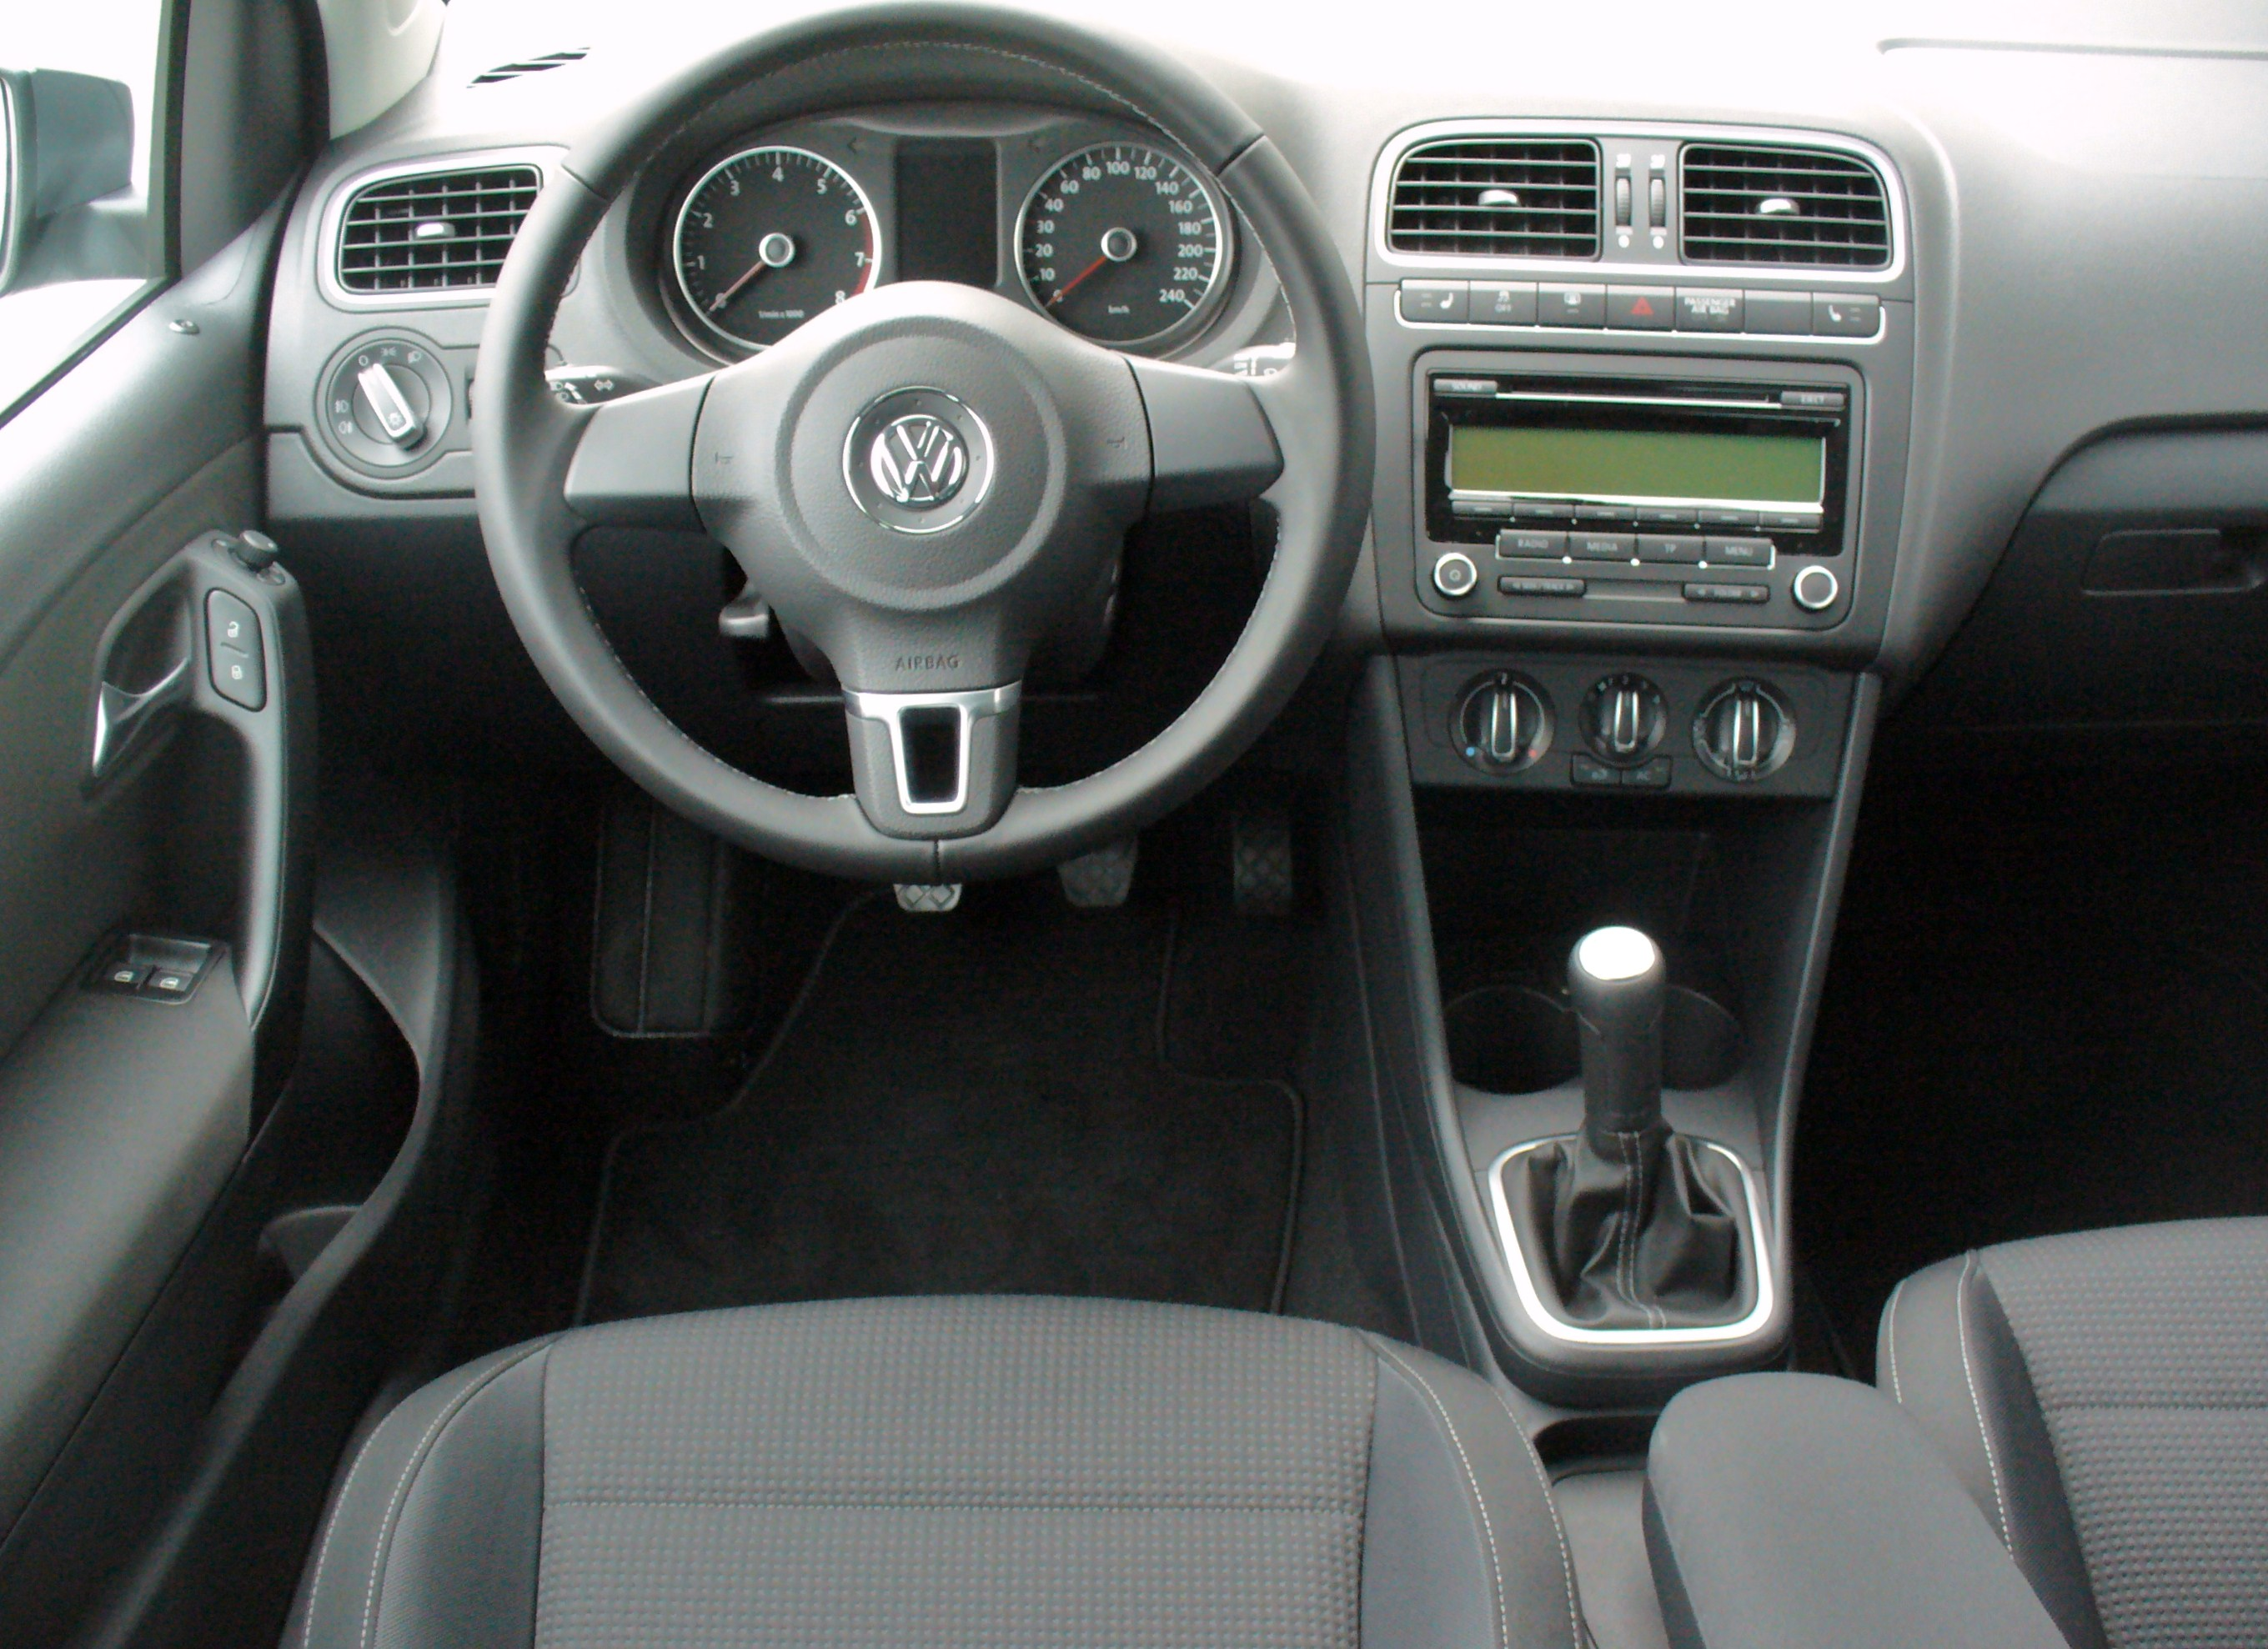 file vw polo v 1 2 team monosilber interieur jpg wikimedia commons. Black Bedroom Furniture Sets. Home Design Ideas